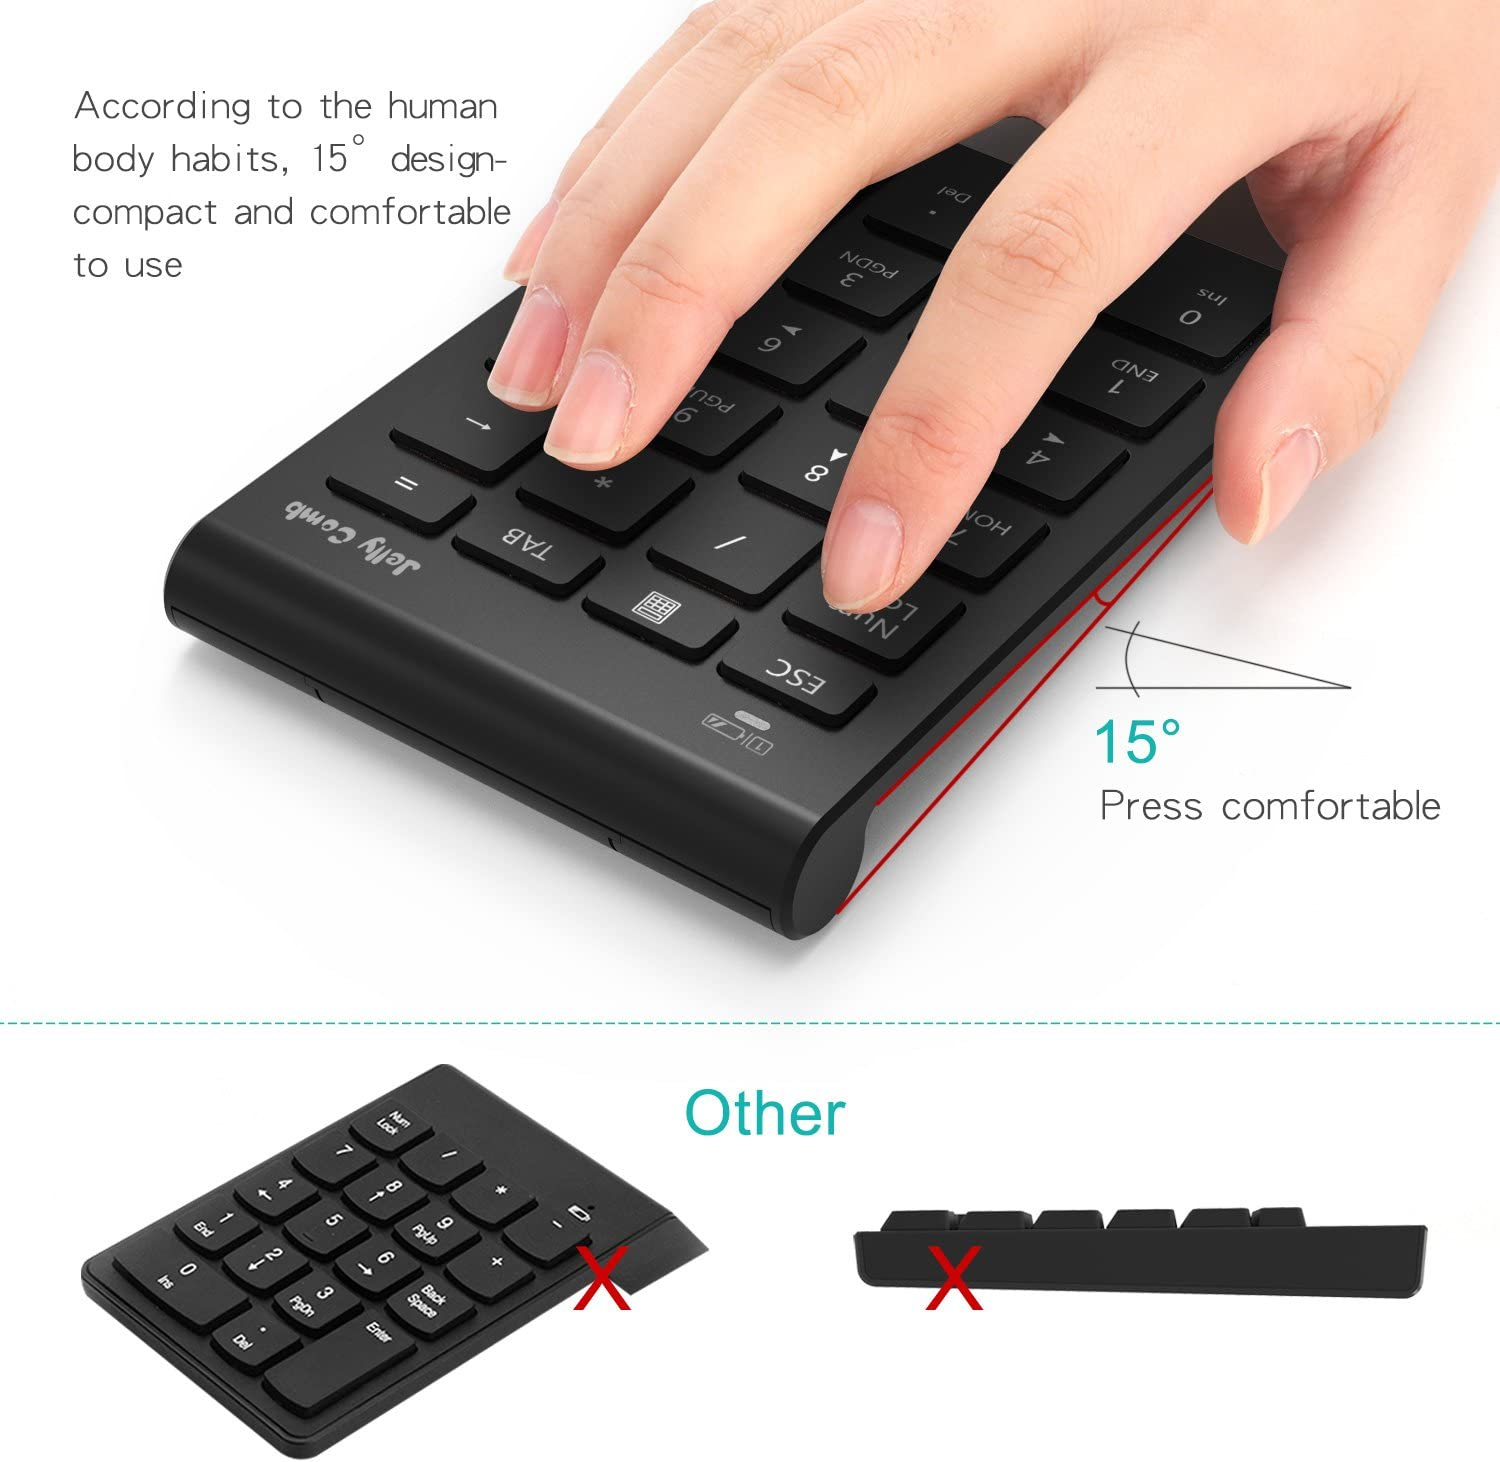 Big Print Letters Jelly Comb Portable Slim USB Number Pad Keyboard with Multi-Function Keypad for Laptop Desktop PC Notebook Full Size 23 Keys Numpad Slim Keypad - White + Silver Numeric Keypad